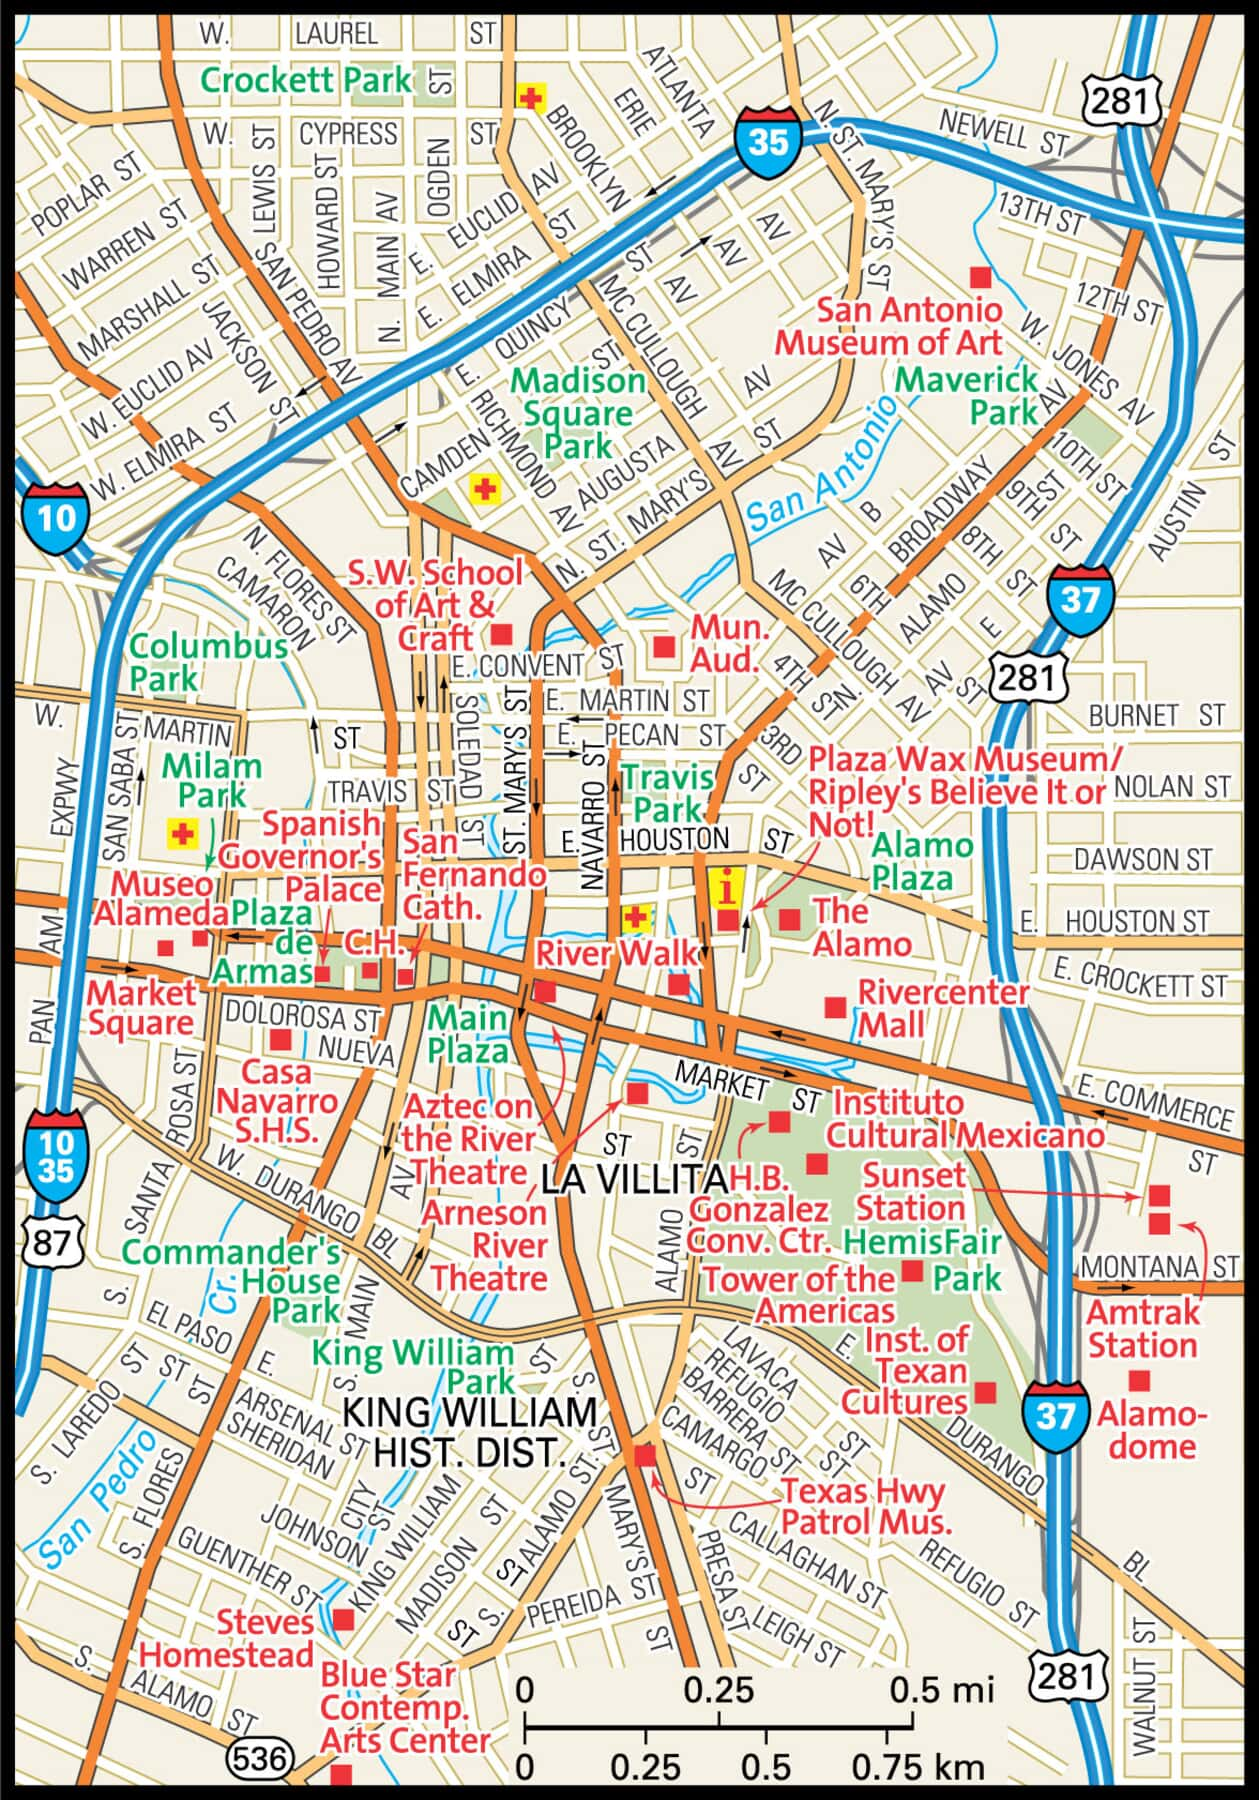 San Antonio Map - Guide to San Antonio, Texas on texas street map, lombard street san francisco map, ft hood street map, sweetwater street map, greenville street map, oldham county street map, city of san angelo texas map, northern kentucky street map, mt pleasant street map, bexar county street map, el paso county street map, oklahoma city area street map, georgetown street map, old san juan street map, south san francisco street map, east austin street map, alamodome street map, jacksonville street map, fairfield county street map, fresno street map,